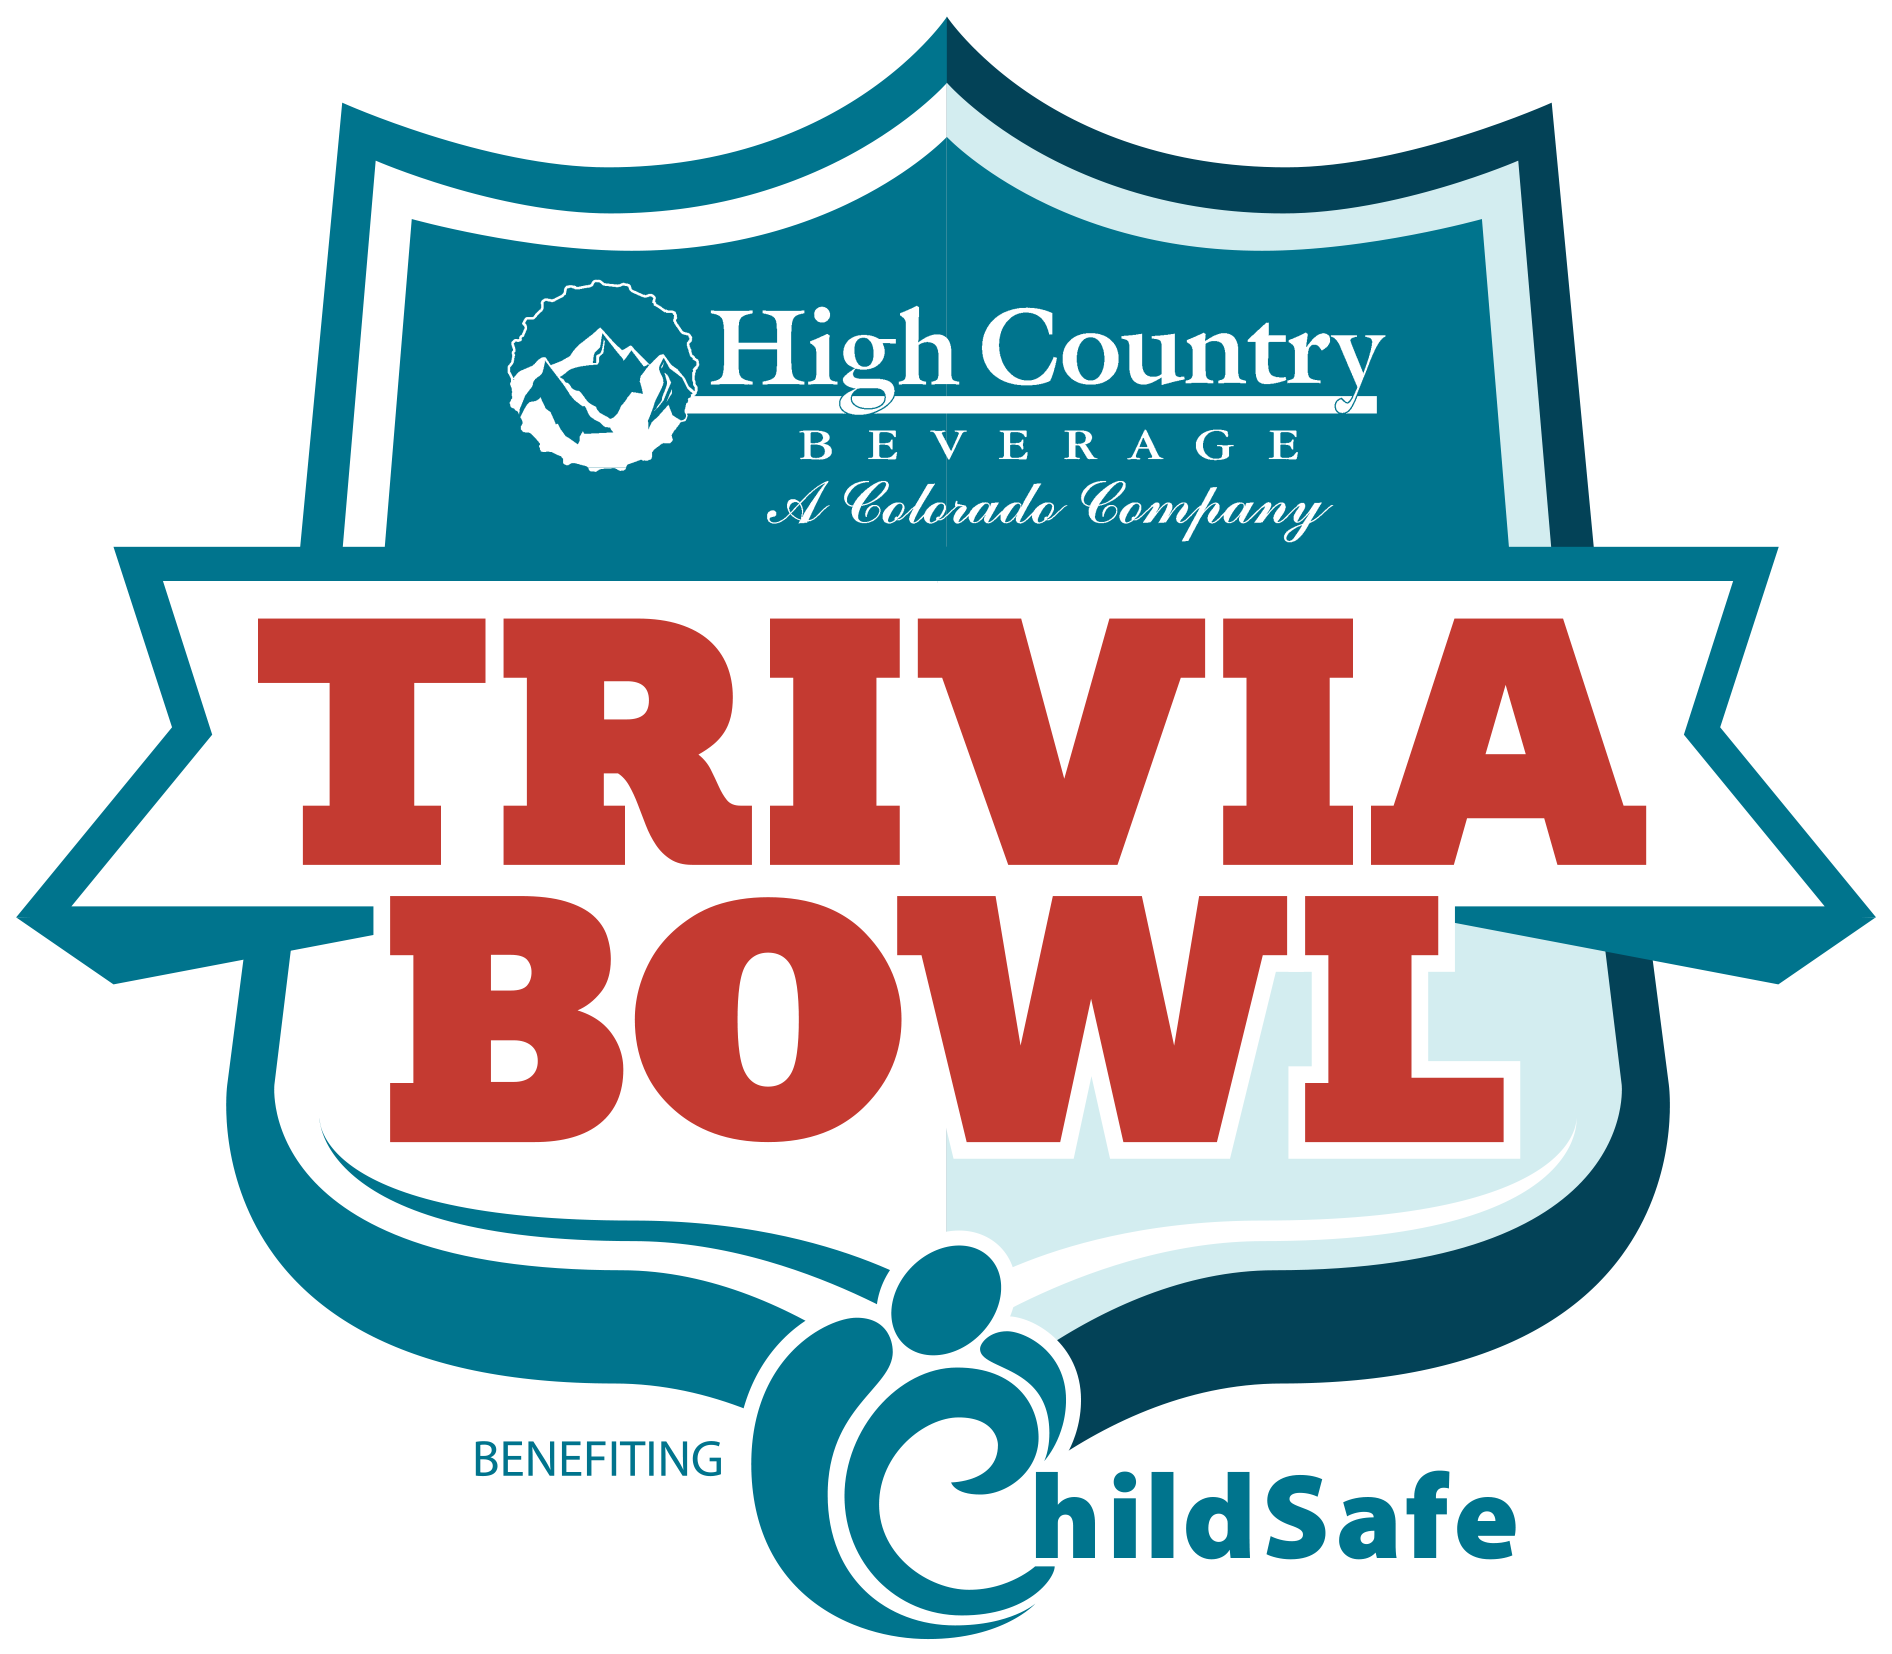 Image of Trivia Bowl Logo sponsored by High Country Beverage